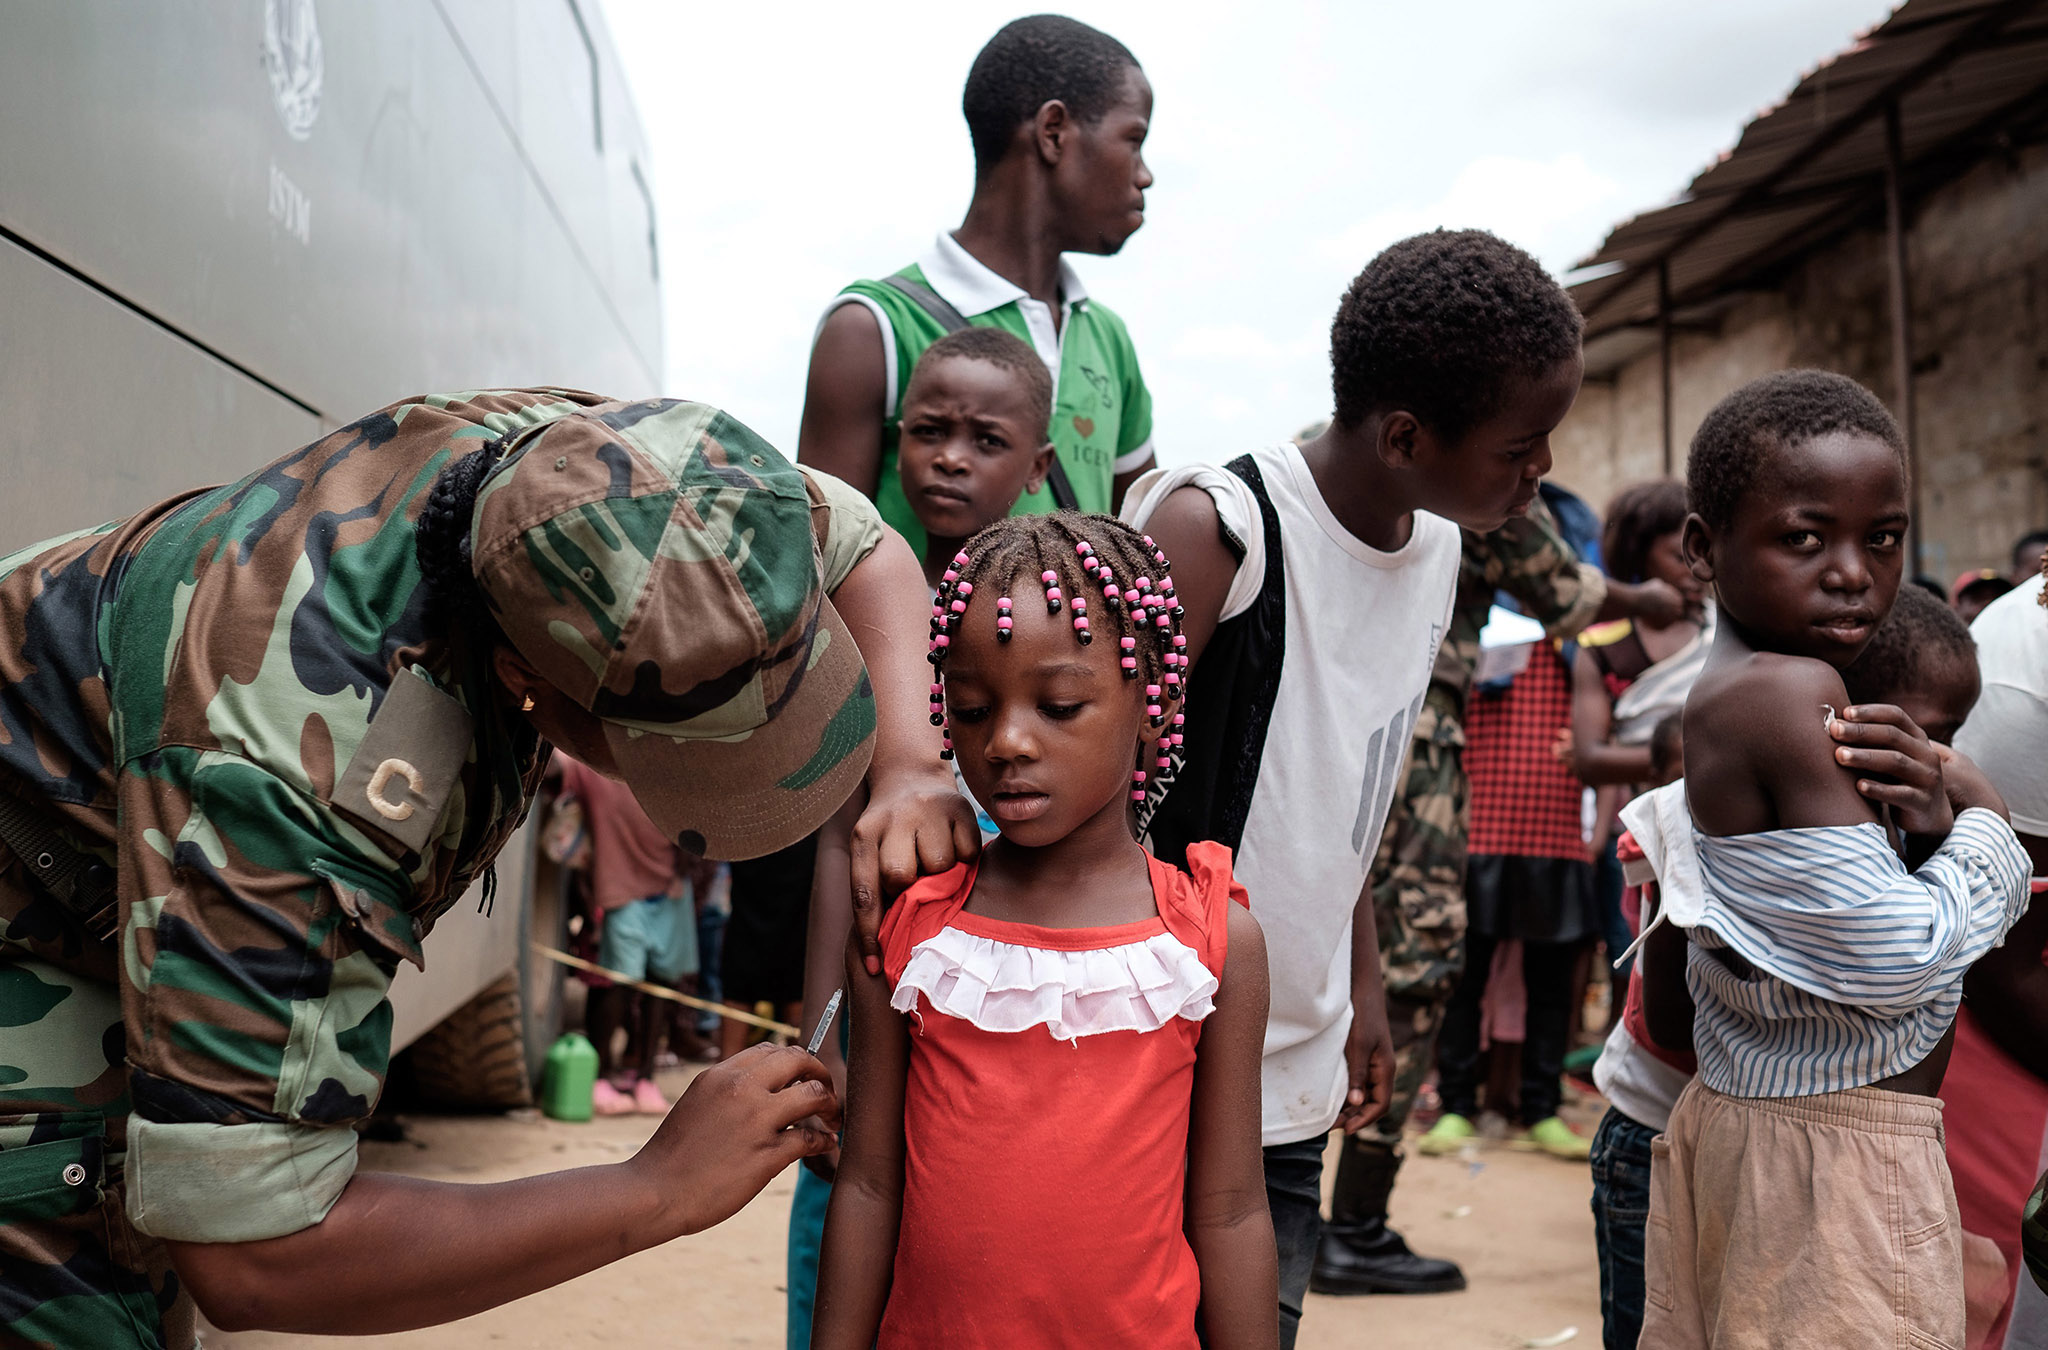 A Angolan military administers a yellow fever vaccine to a child at 'Quilometro 30' market, Luanda, Angola